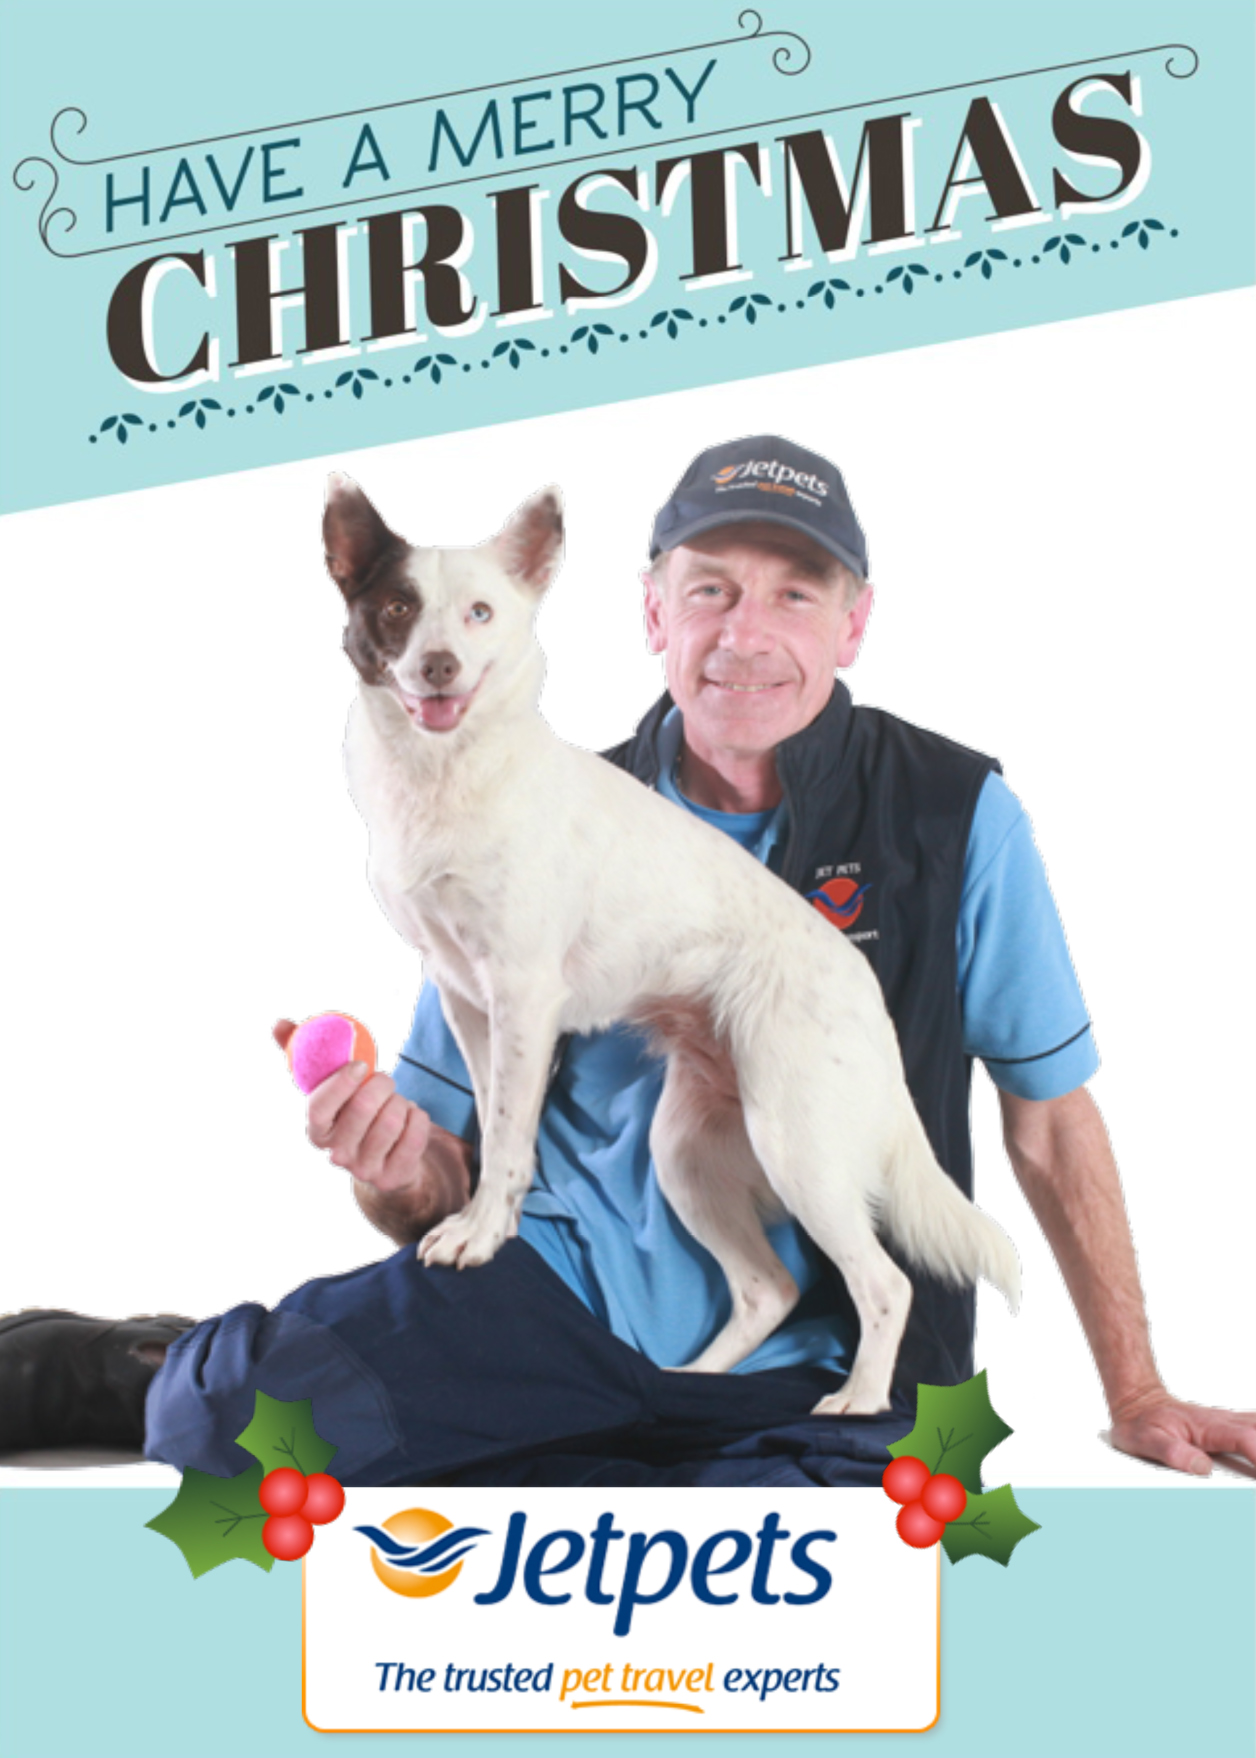 We would like to wish all of our Jetpets friends a very merry Christmas! From Jetpets Pet Transport